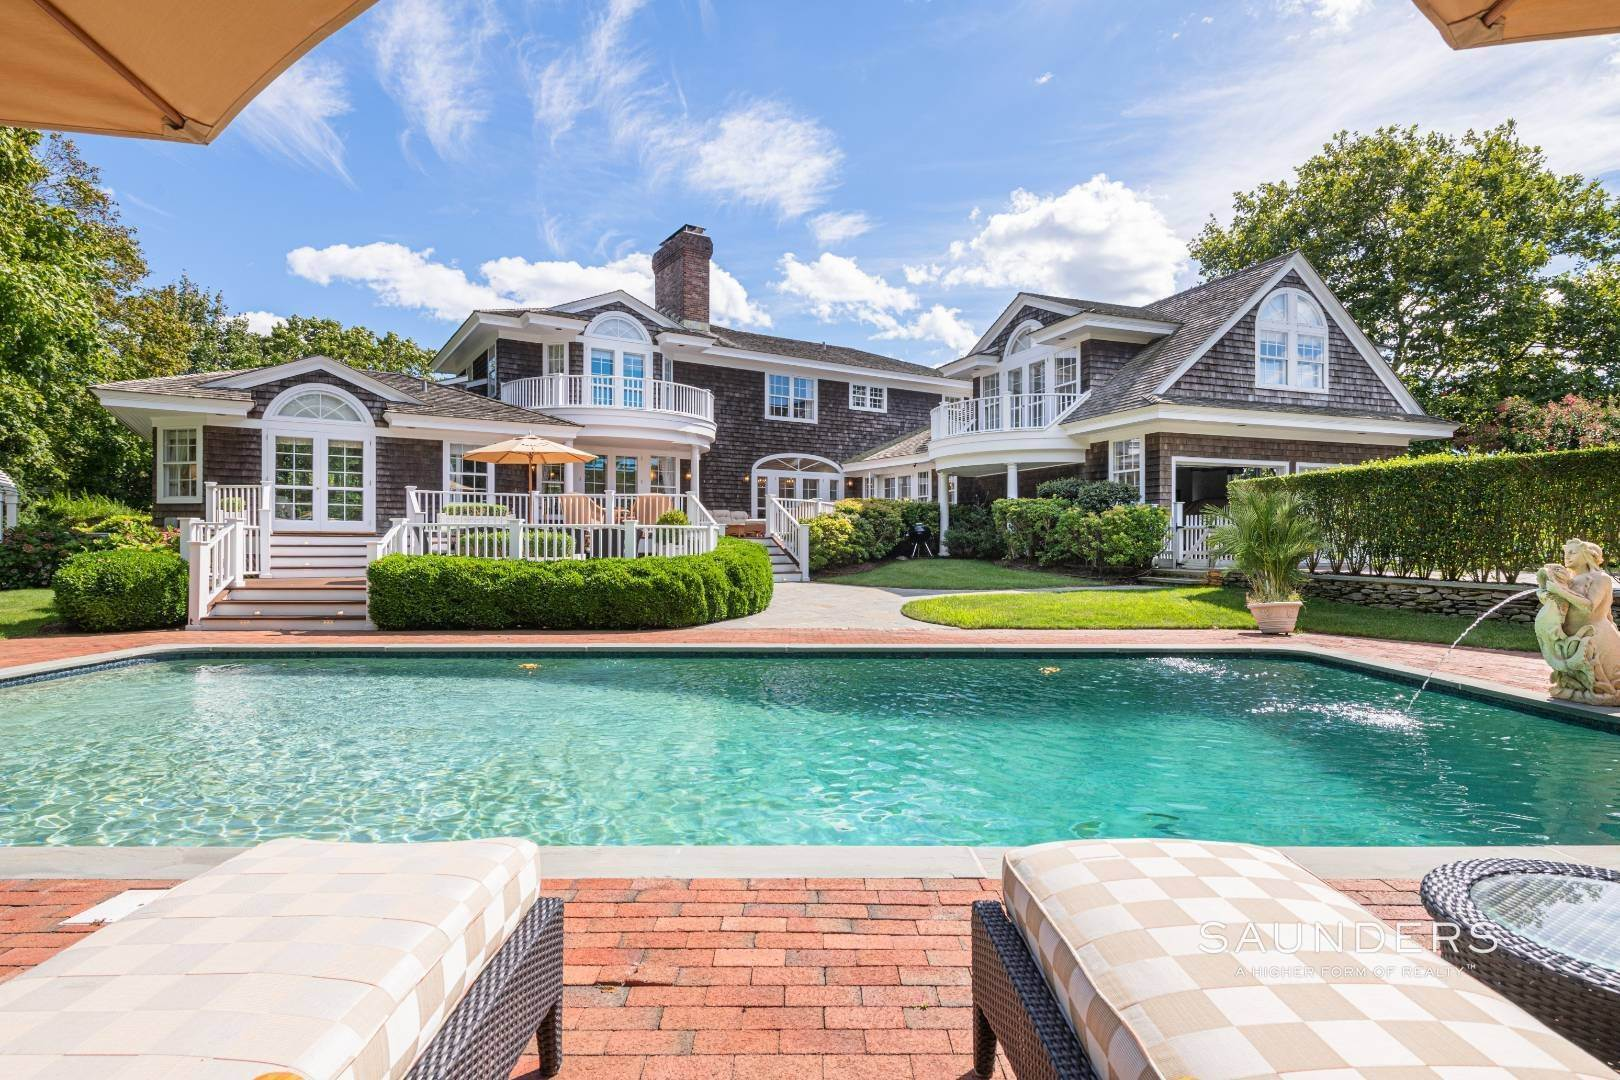 3. Single Family Homes for Sale at Classic Elegance In The Heart Of Quogue Village 68 Quogue Street, Quogue Village, Southampton Town, NY 11959